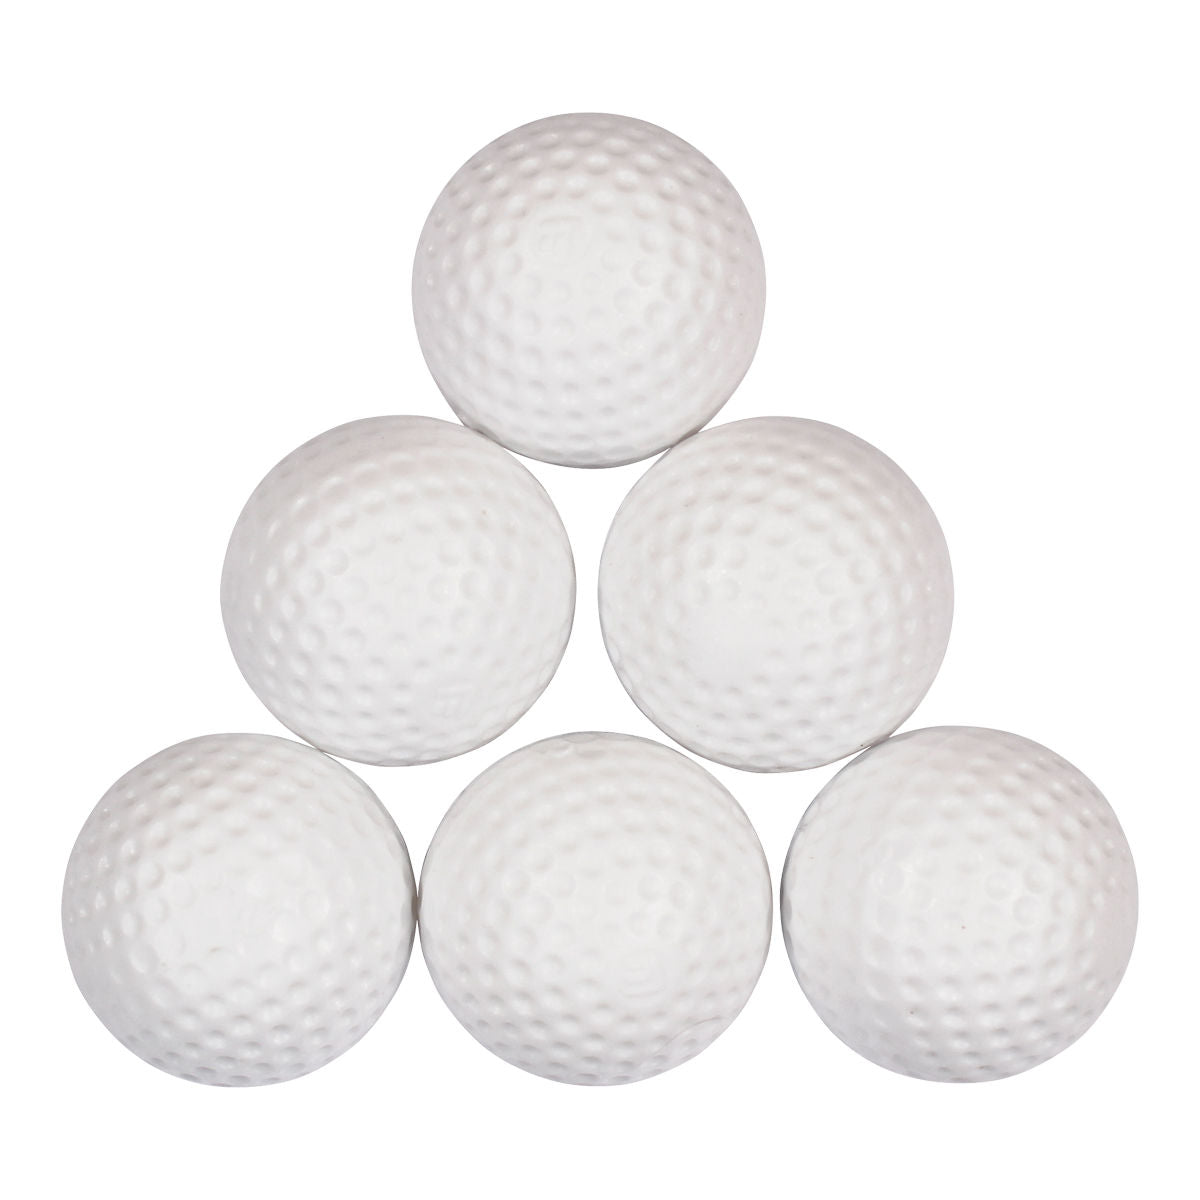 30% Distance Golf Balls pack of 6 - Event Stuff Ltd Owns Putterfingers.com!